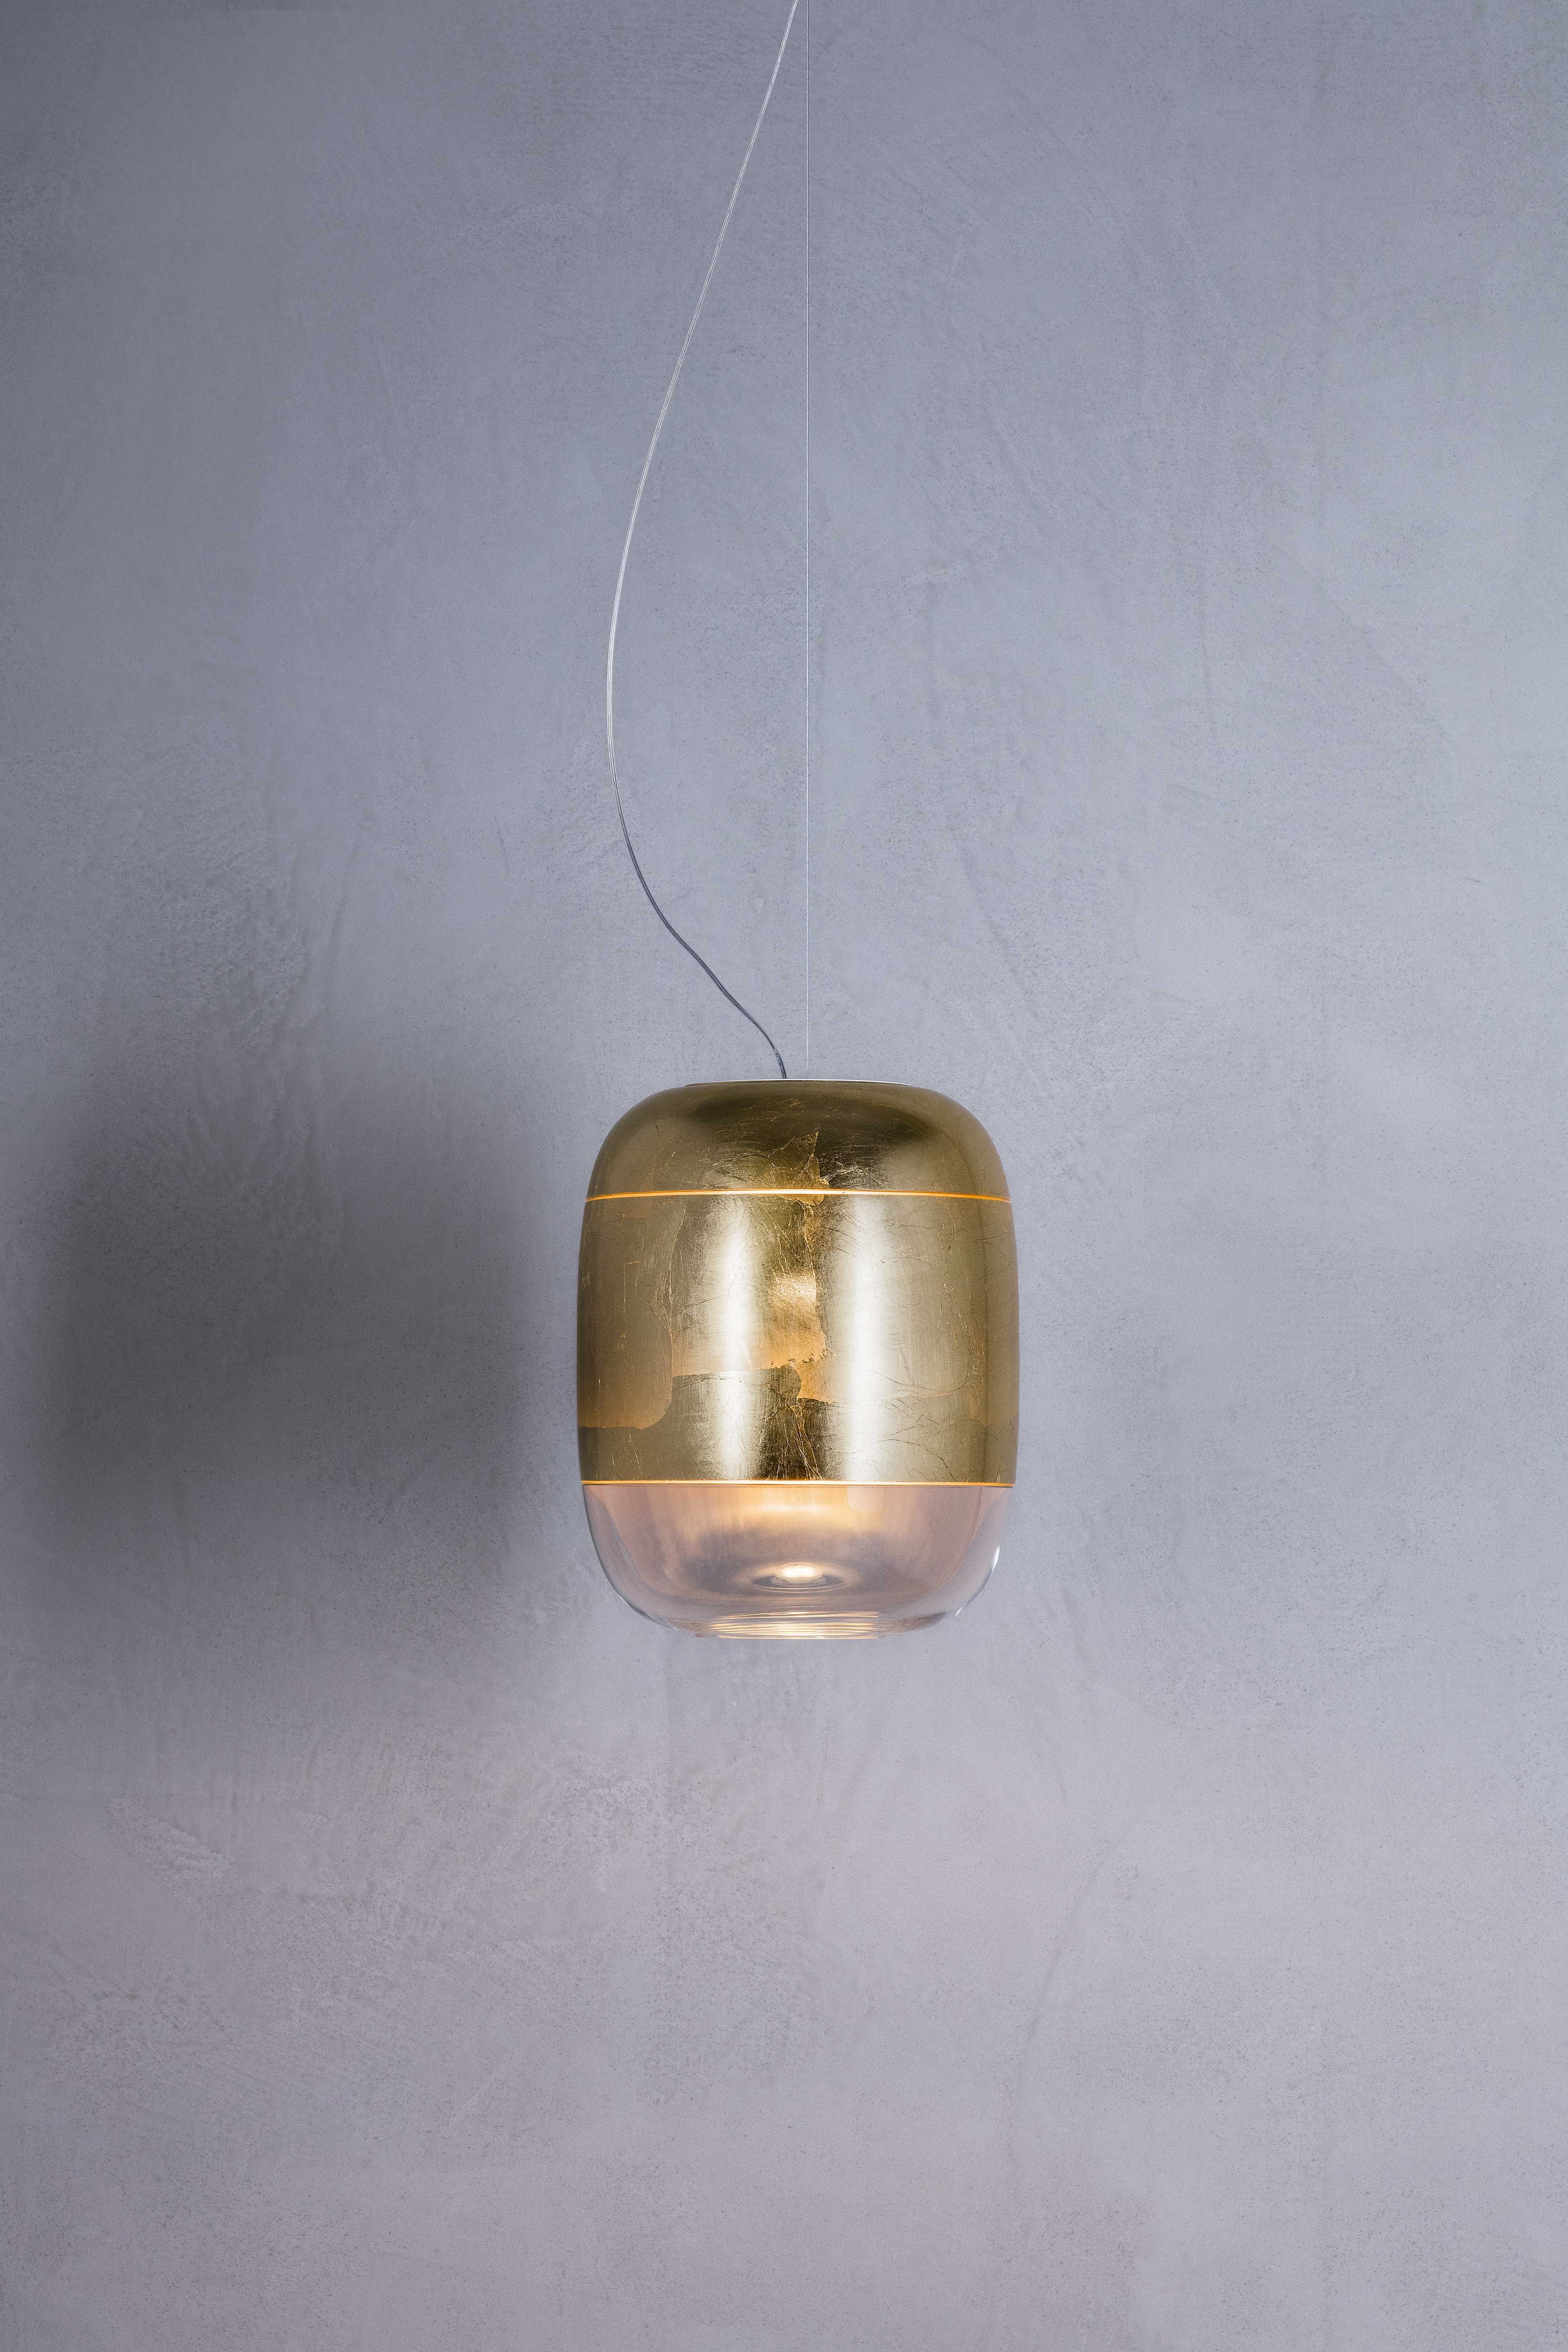 Gong Suspension Fixture Is Made Of A Blown Glass Diffuser Decorated By Hand With Refined Details Like The Gold Leaf Fi Prandina Glass Diffuser Glass Blowing